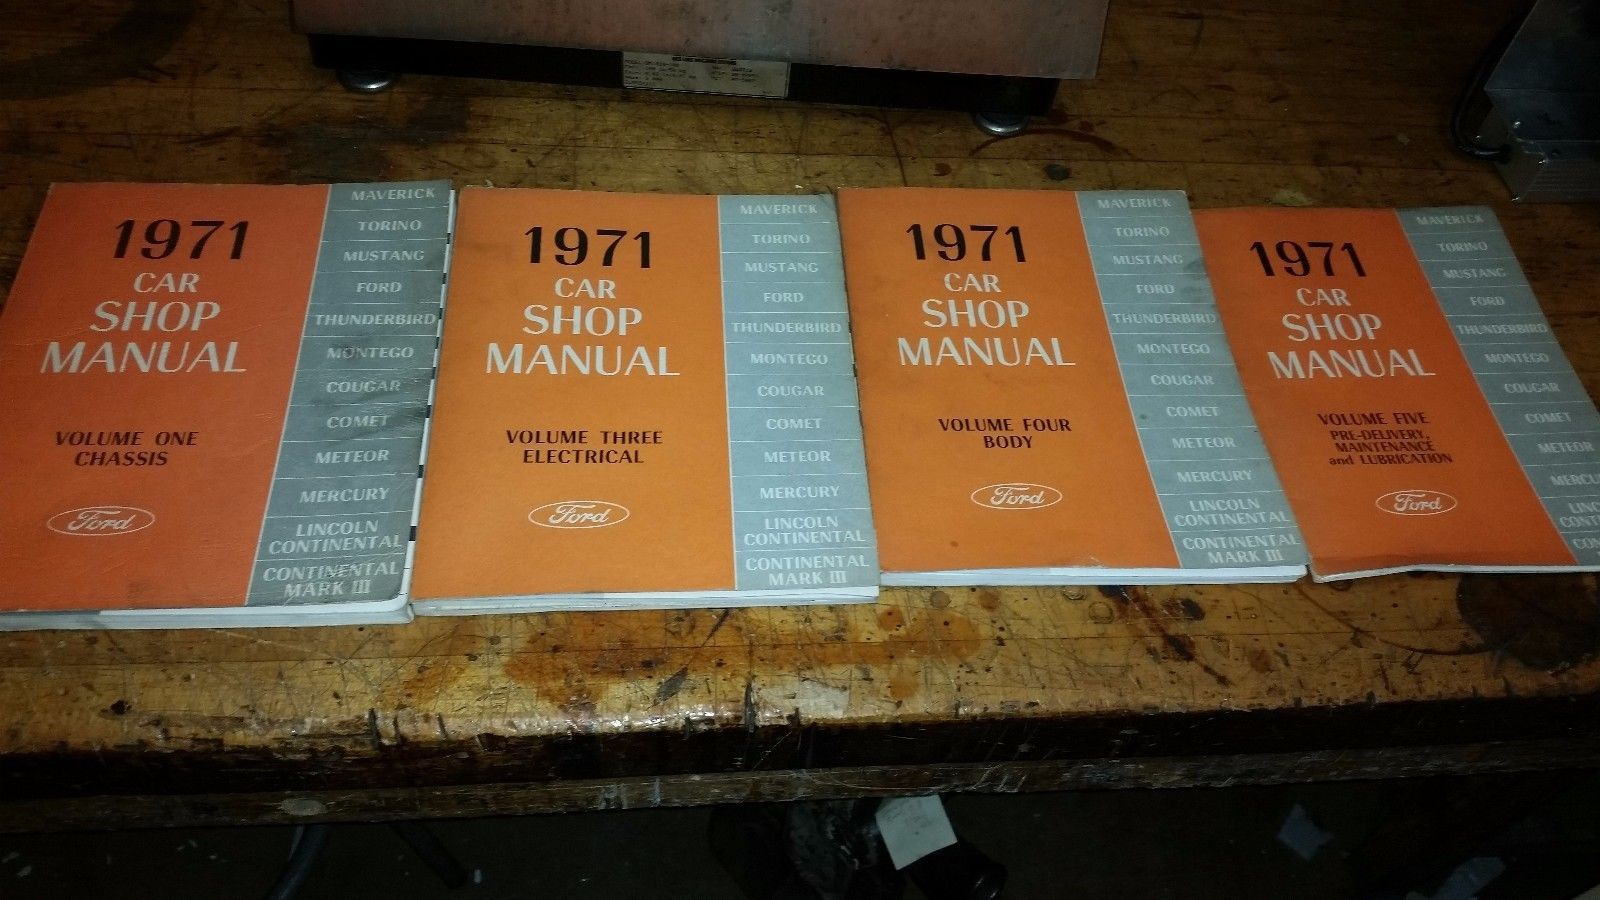 Ford Car Shop Manual 1971 Vol. 1 3 4 5 Lot of 4 electrical chassis Body Maint